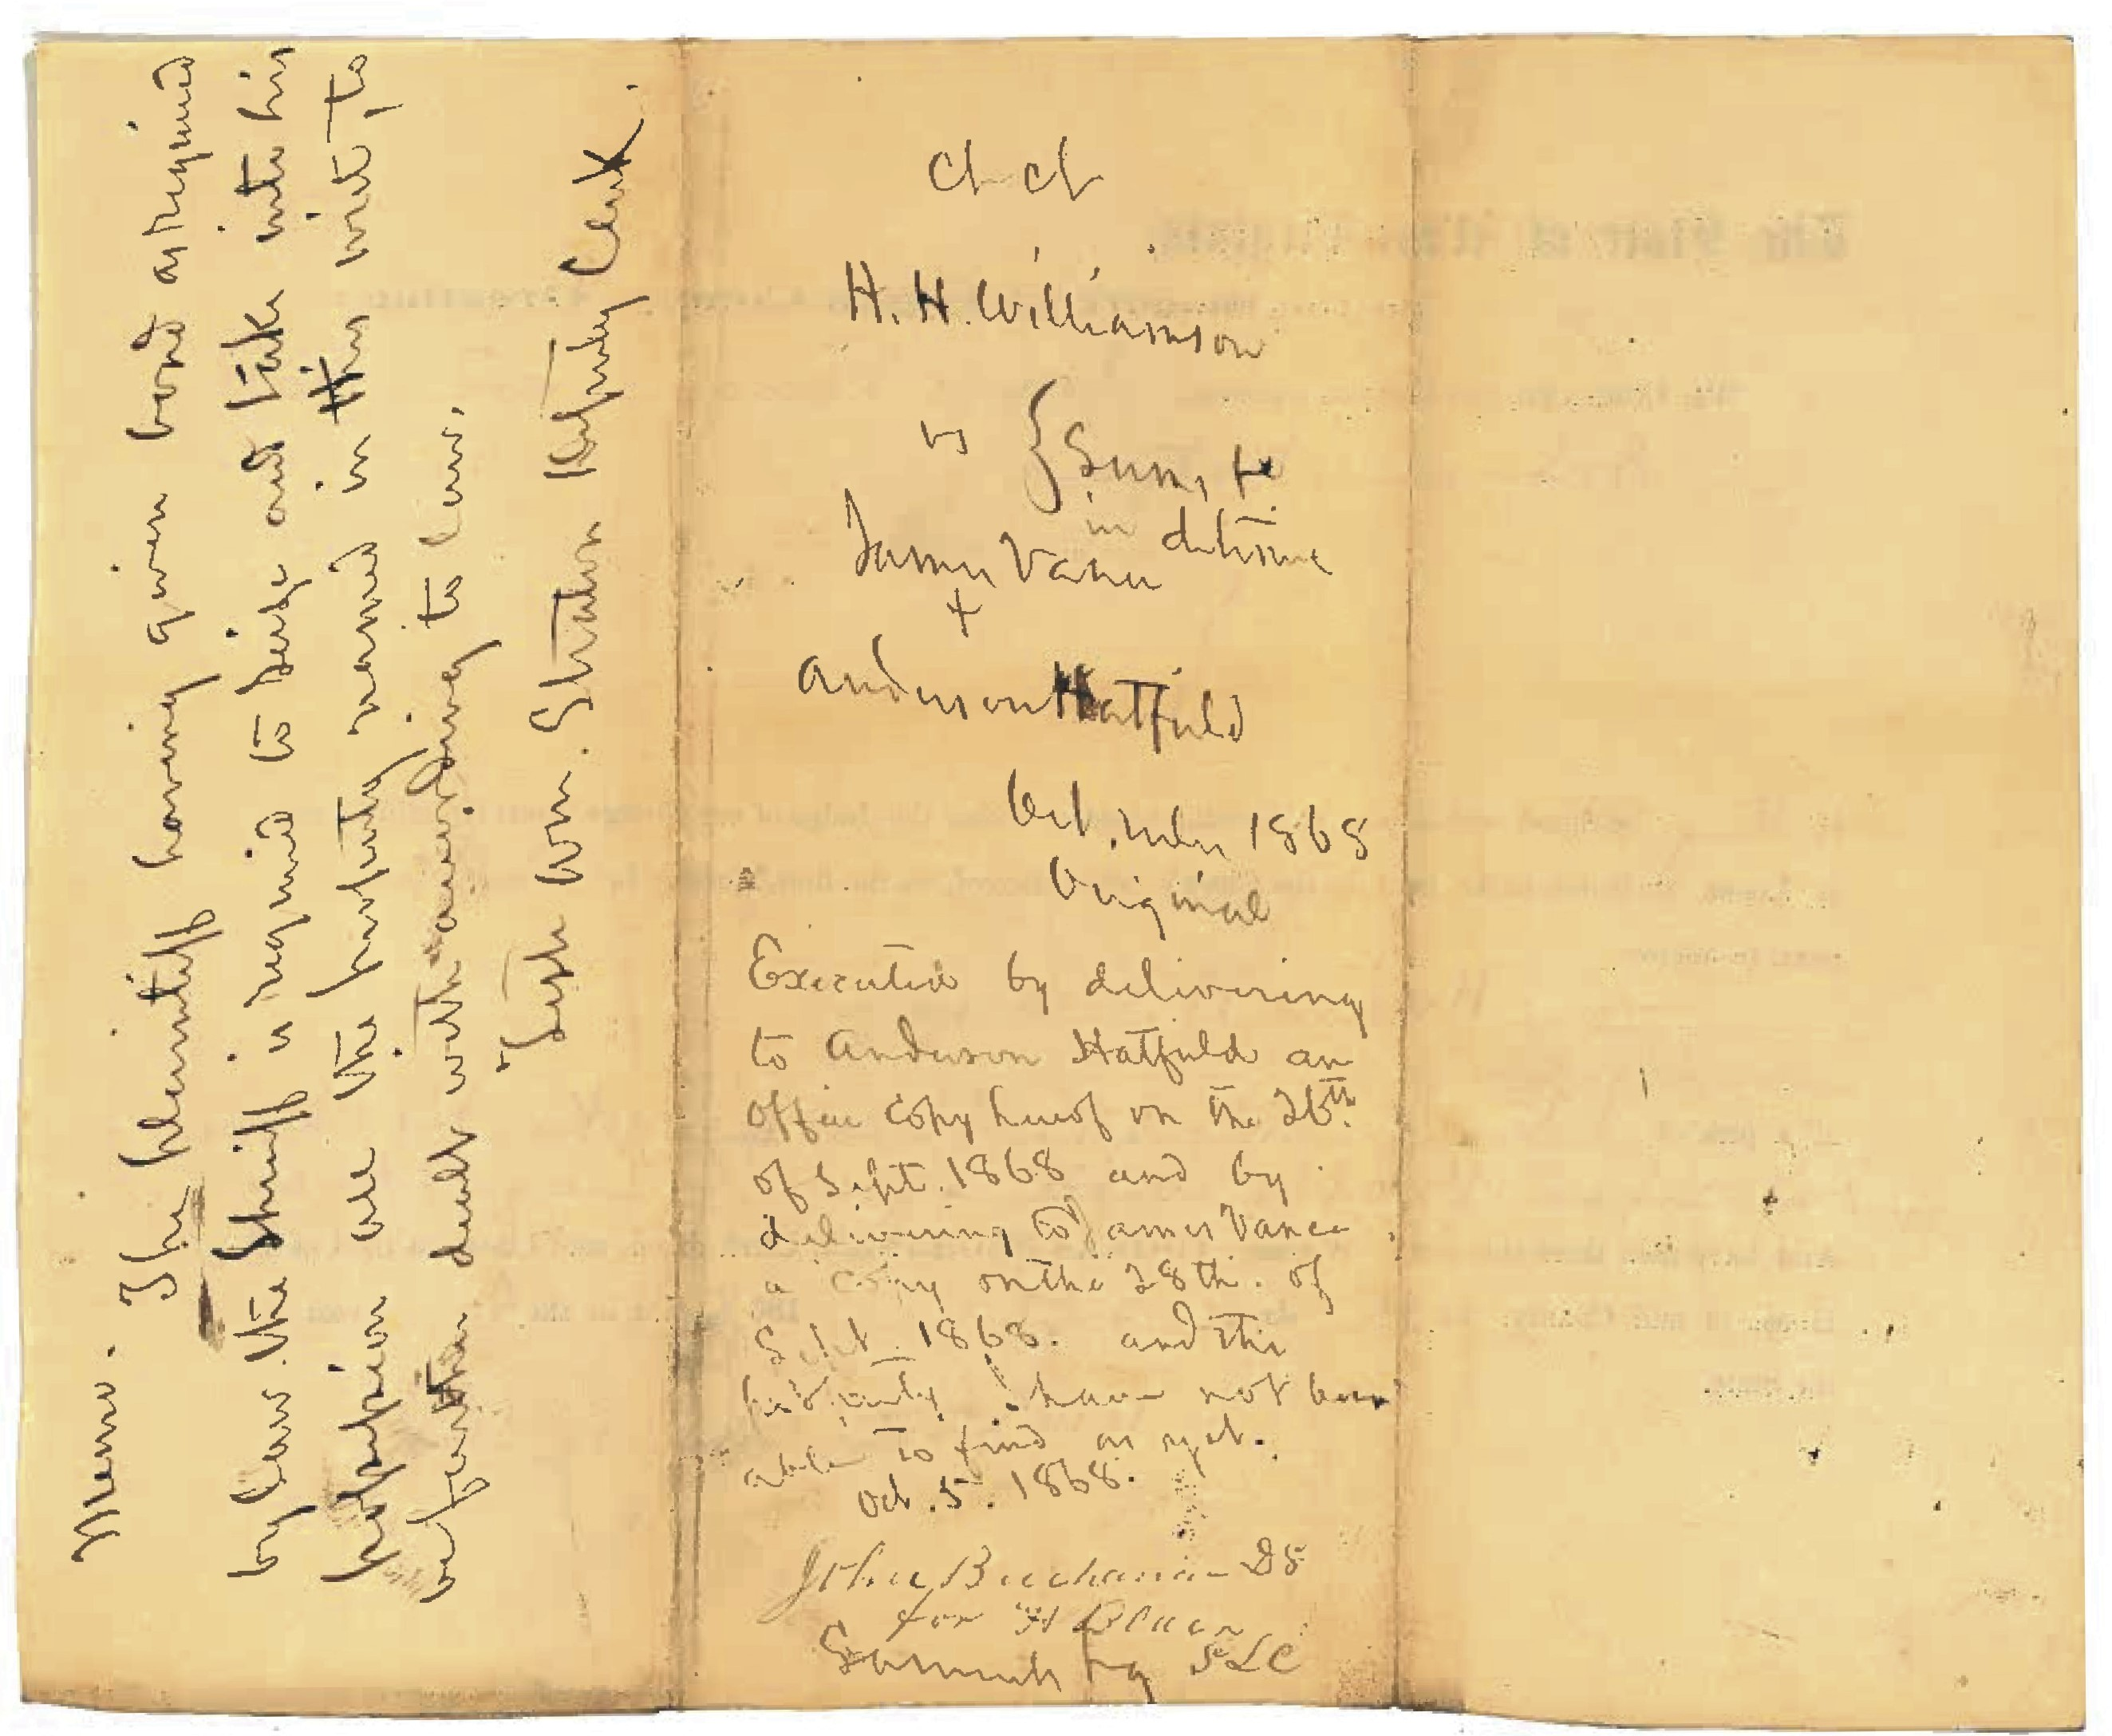 Anderson Hatfield and James Vance Document 1868 4